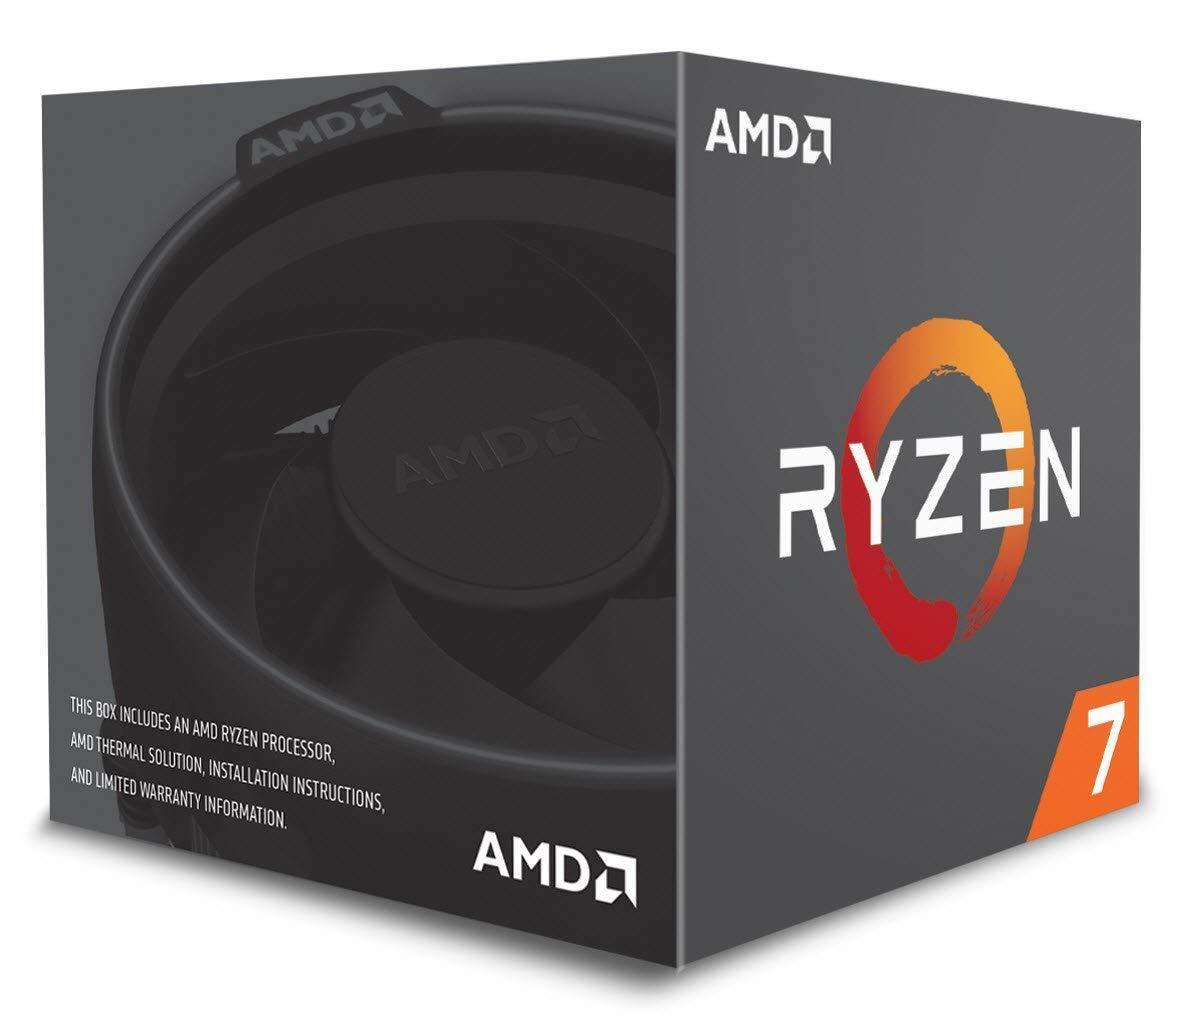 AMD Ryzen 7 2700 8-Core 3.2GHz 4.1GHz Turbo Wraith Spire Coo